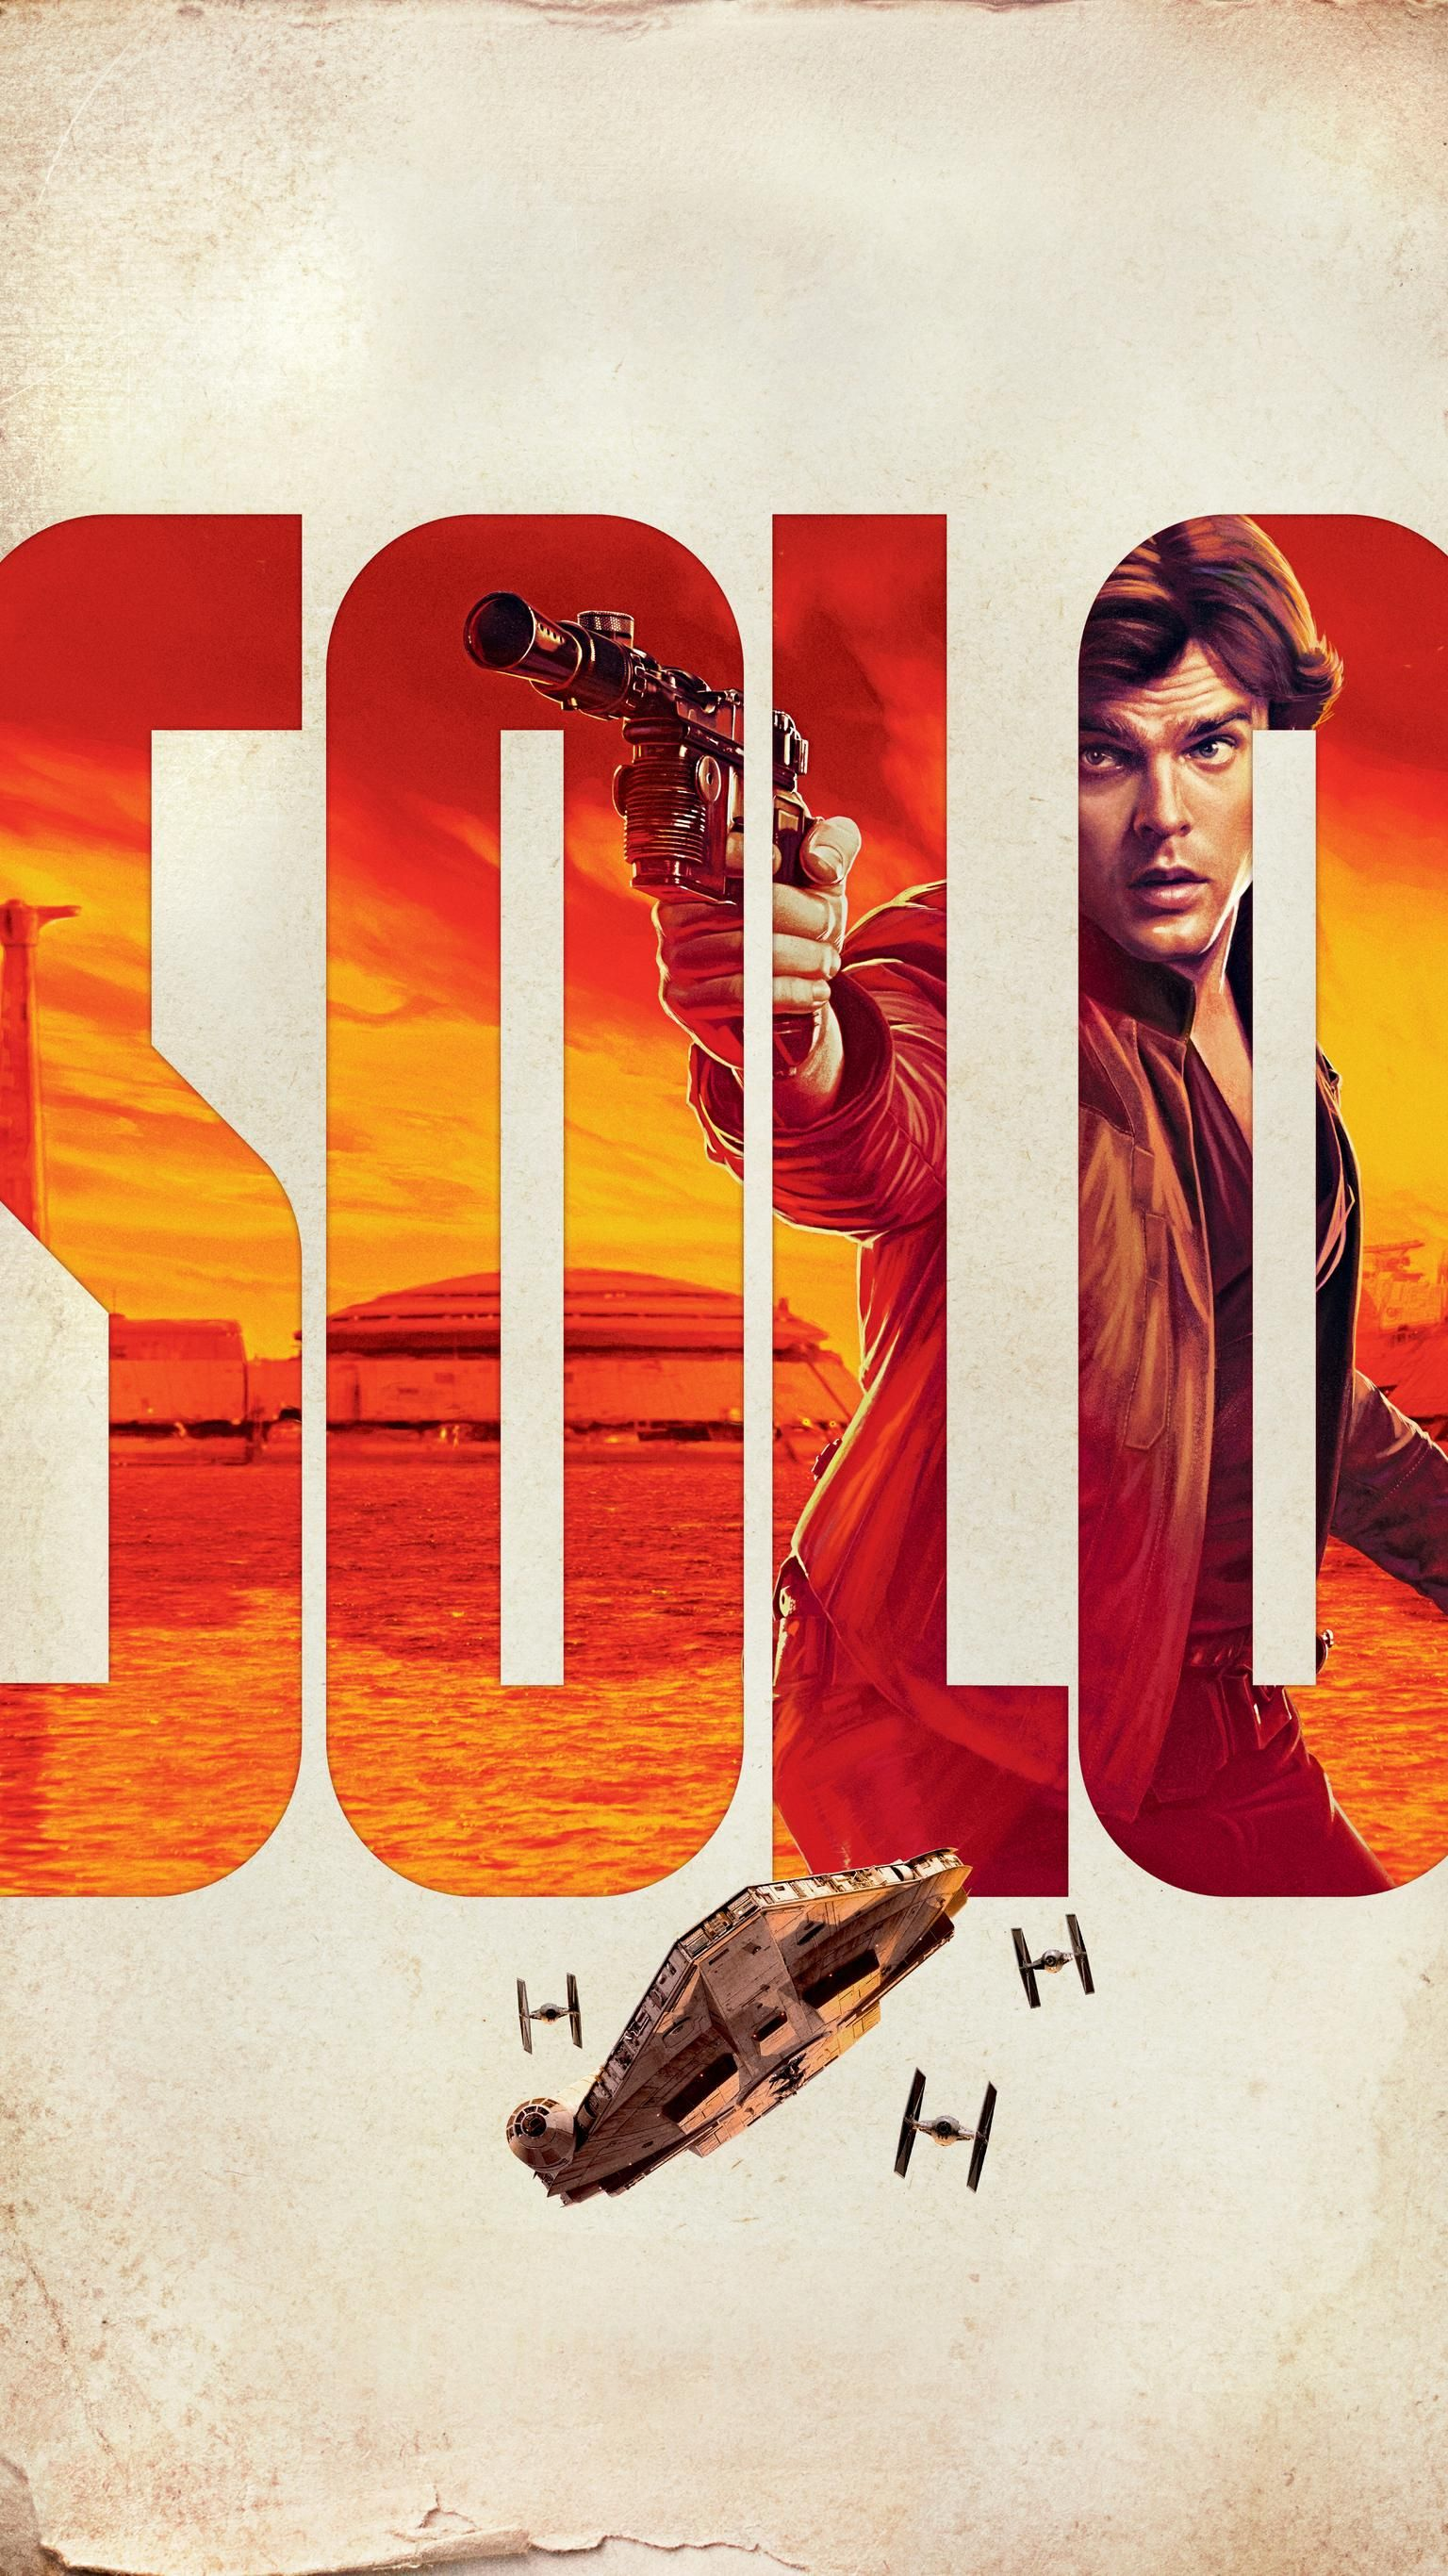 Solo A Star Wars Story 2018 Phone Wallpaper Moviemania Star Wars Han Solo War Stories Star Wars